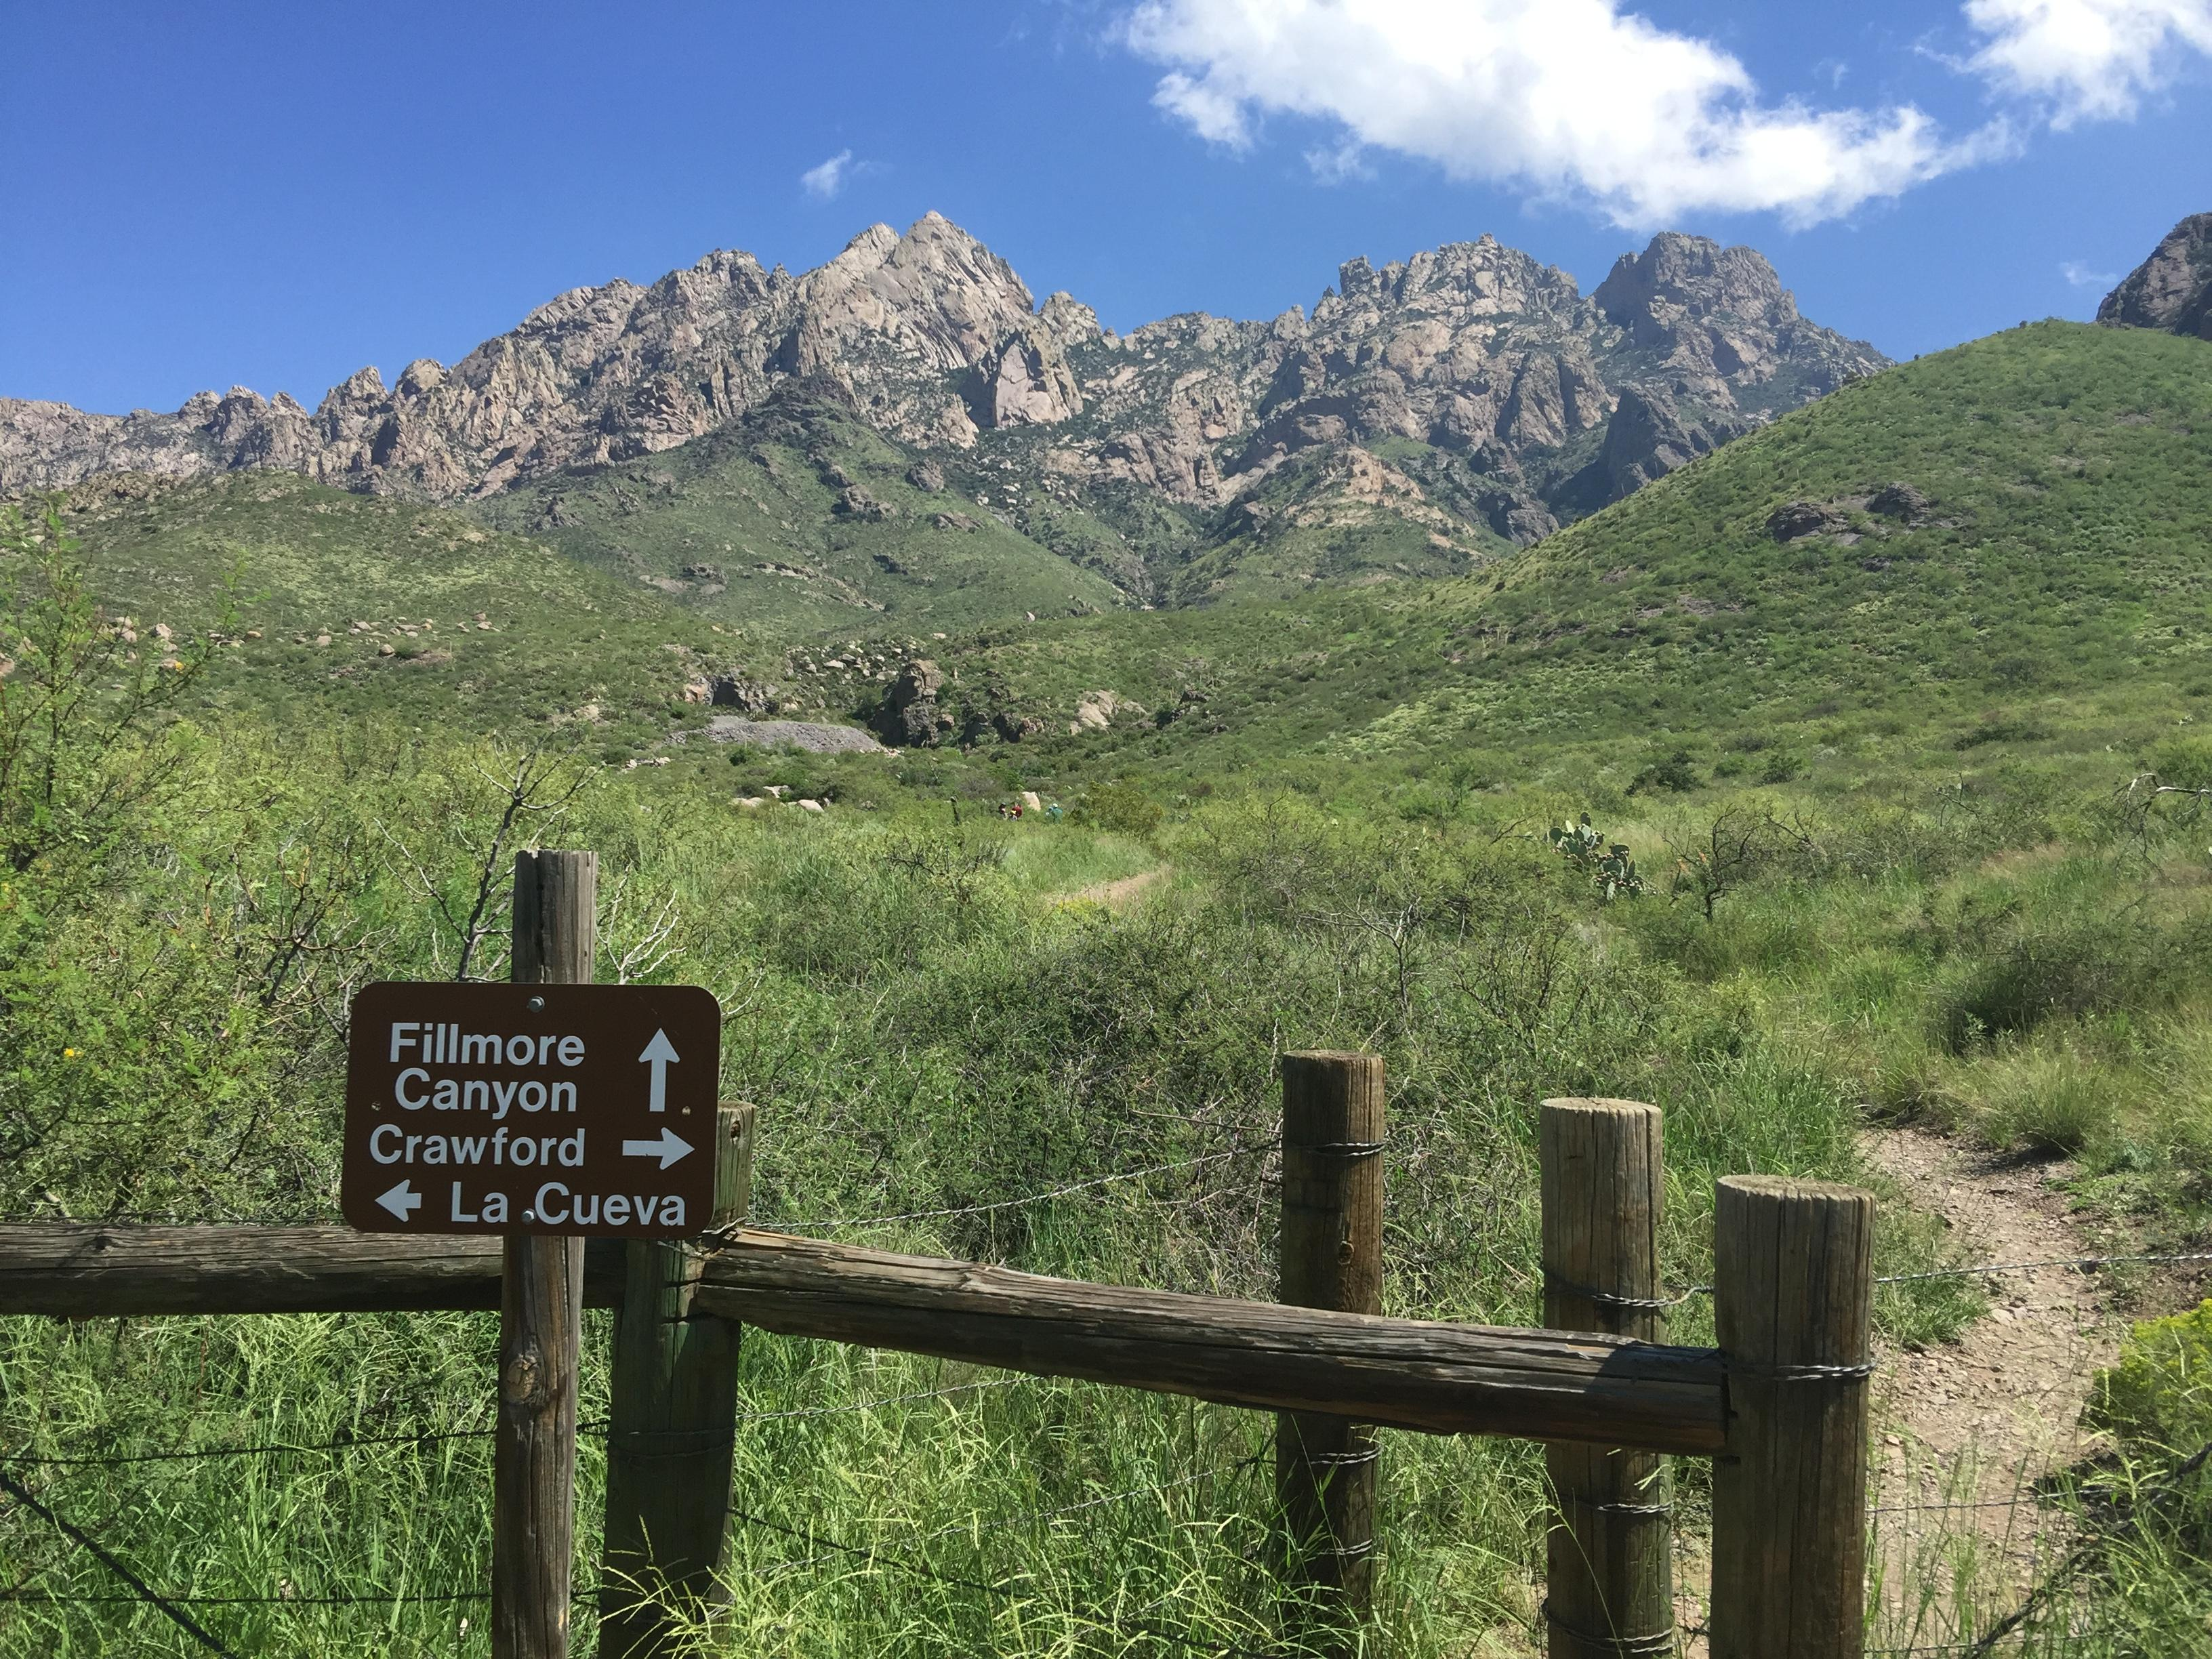 OpenNote: Sign post for La Cueva, Crawford, and Fillmore Canyon